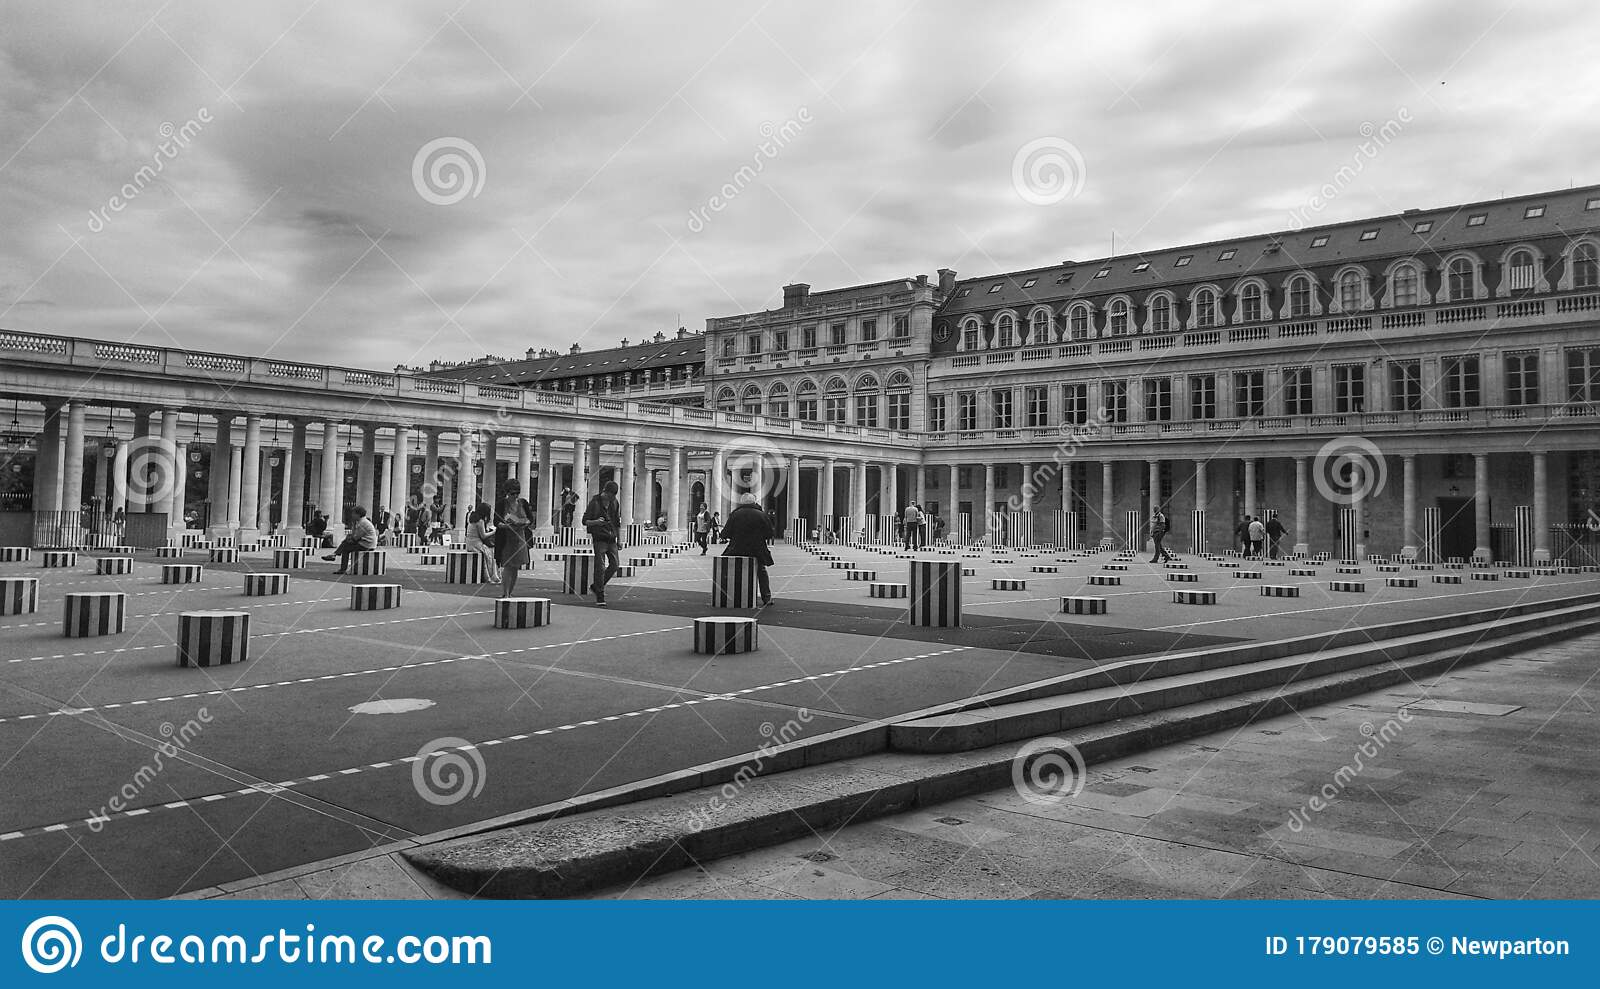 Jardin De Palais Royal In Black And White Landmark Of Paris France Stock Image Image Of Palais Metropolis 179079585